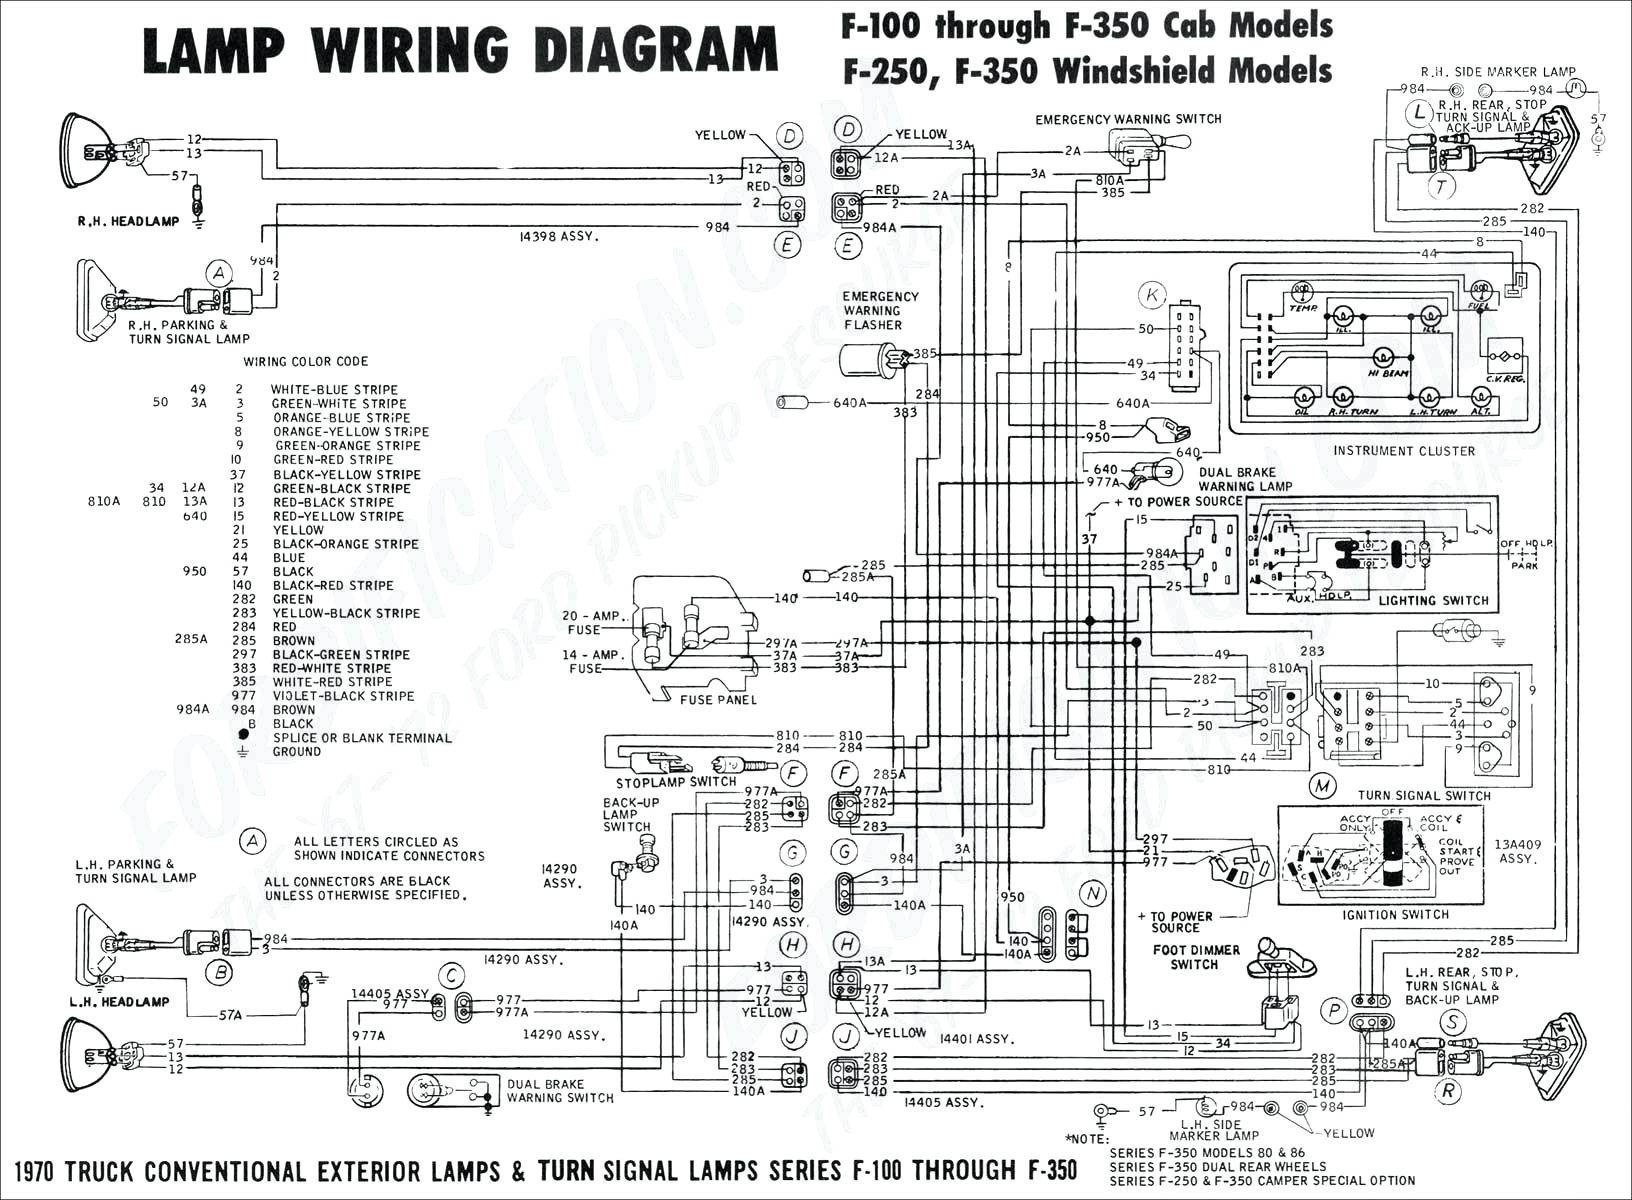 05 dodge durango stereo wiring diagram photocell with contactor 1999 new image